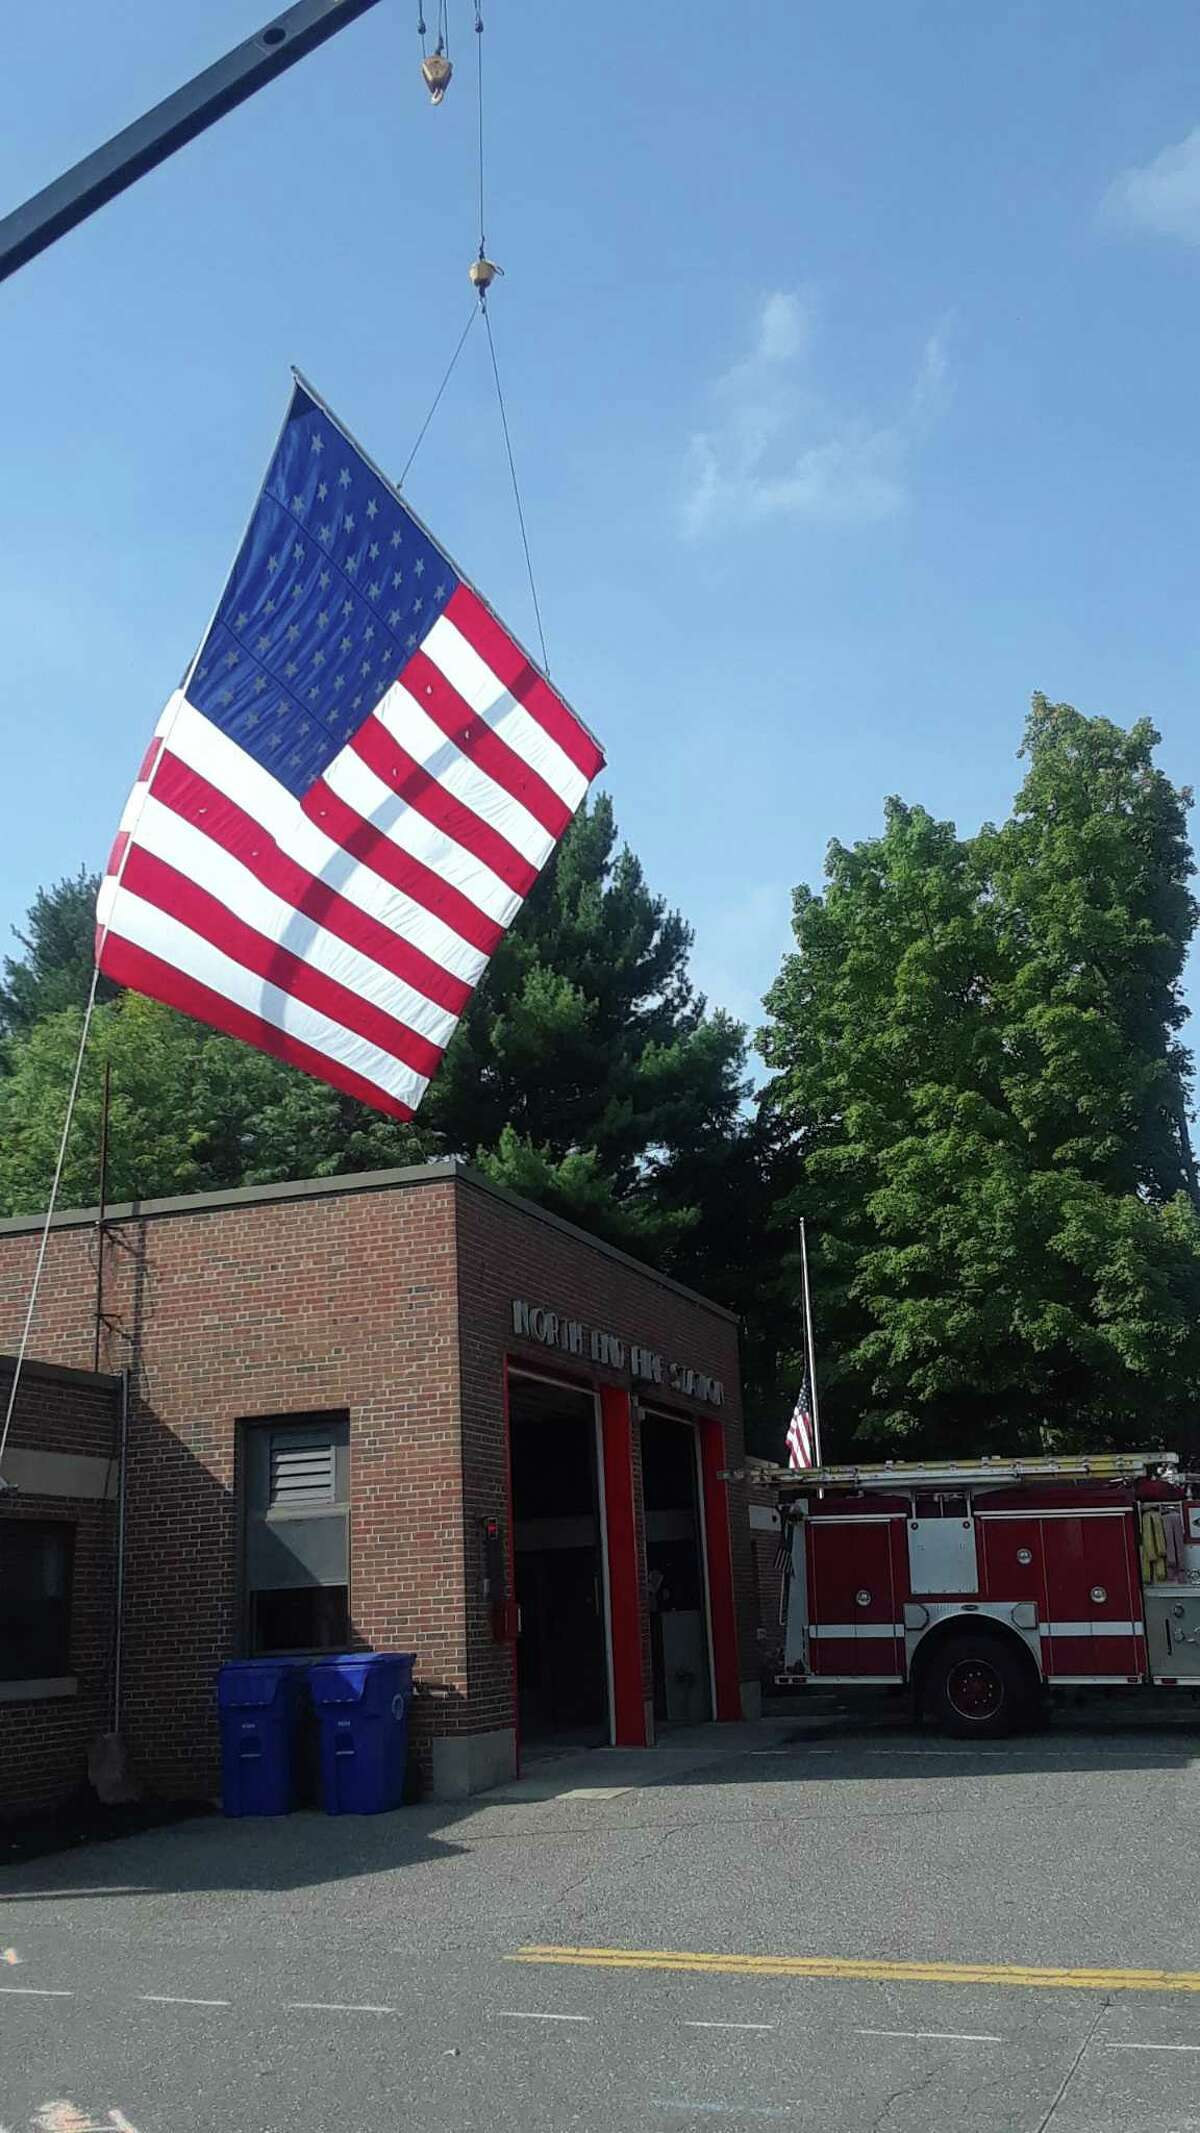 Torrington Fire Department hung a huge American flag over the North End Fire Station in honor of 9/11 on Wednesday, and held a ceremony in the morning.